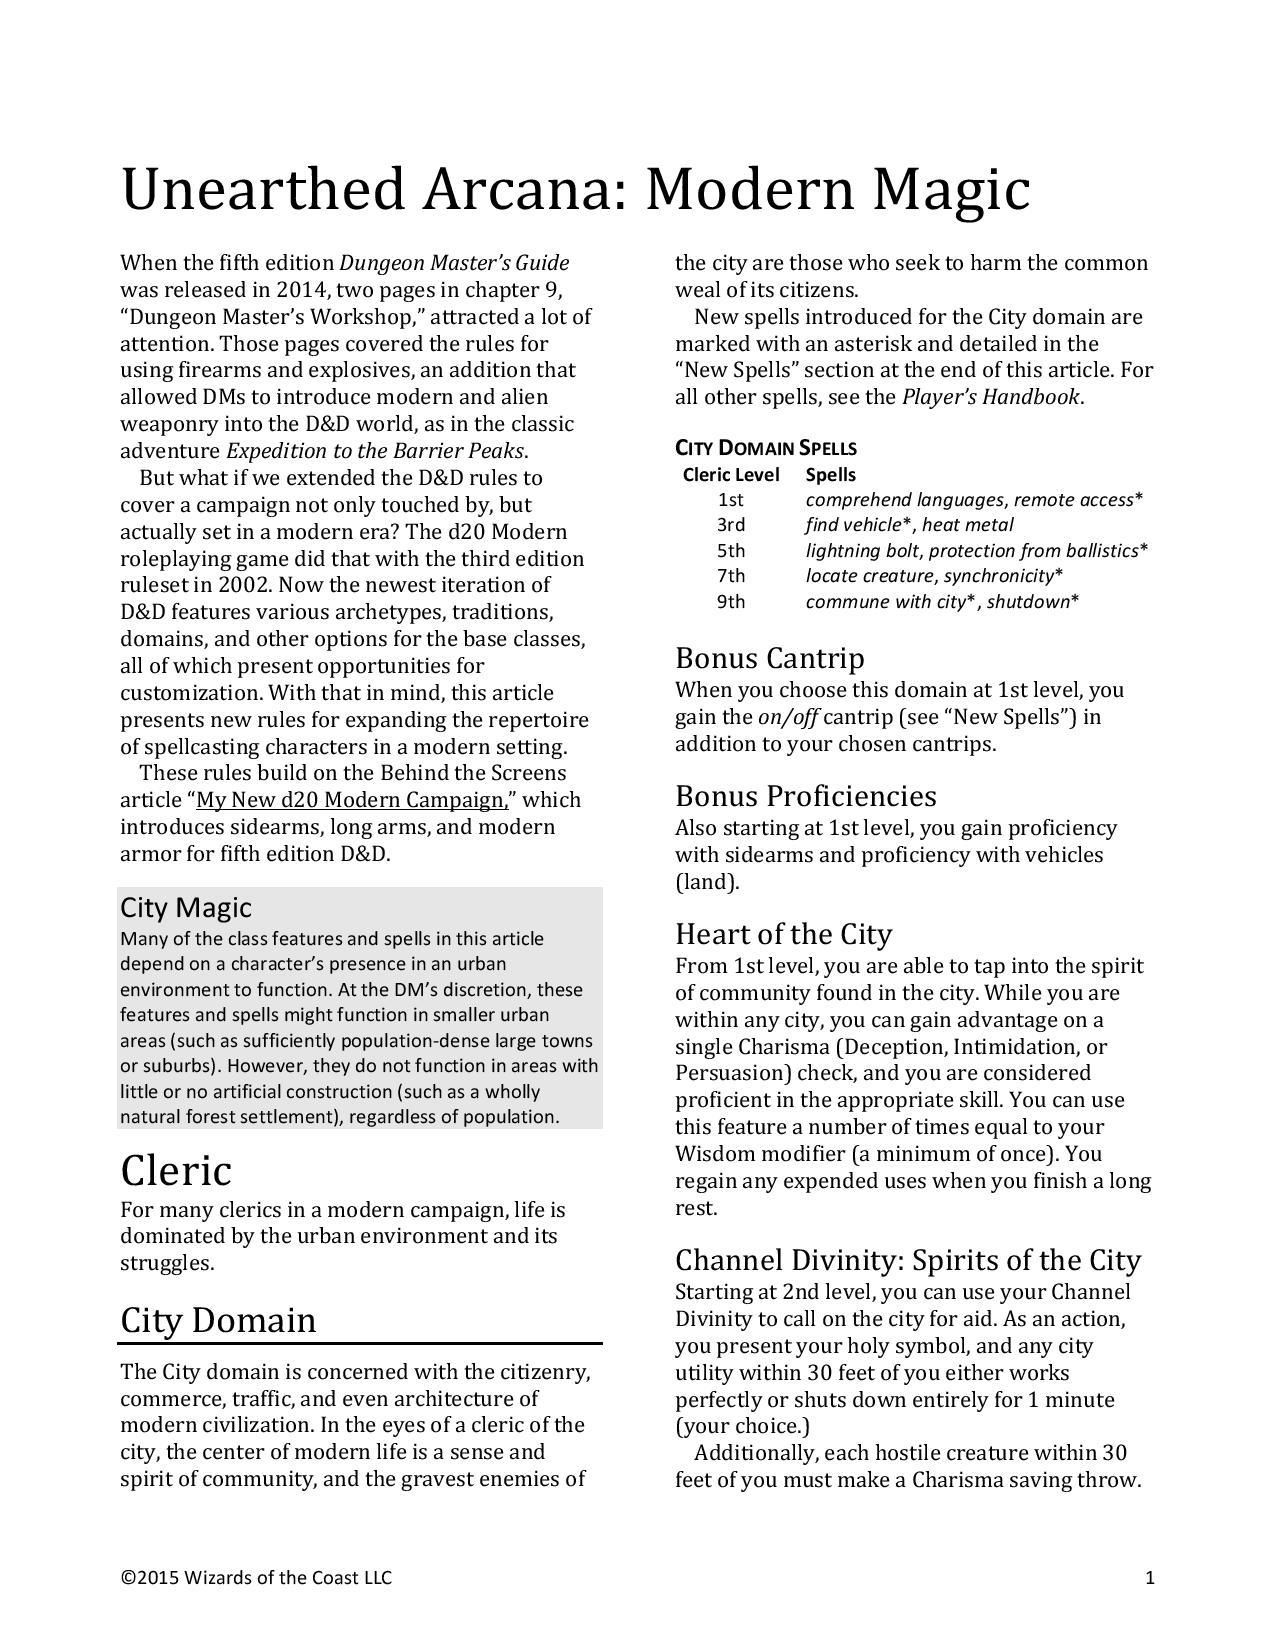 DnD 5e Homebrew — Unearthed Arcana: Modern Magic | DND | Dnd